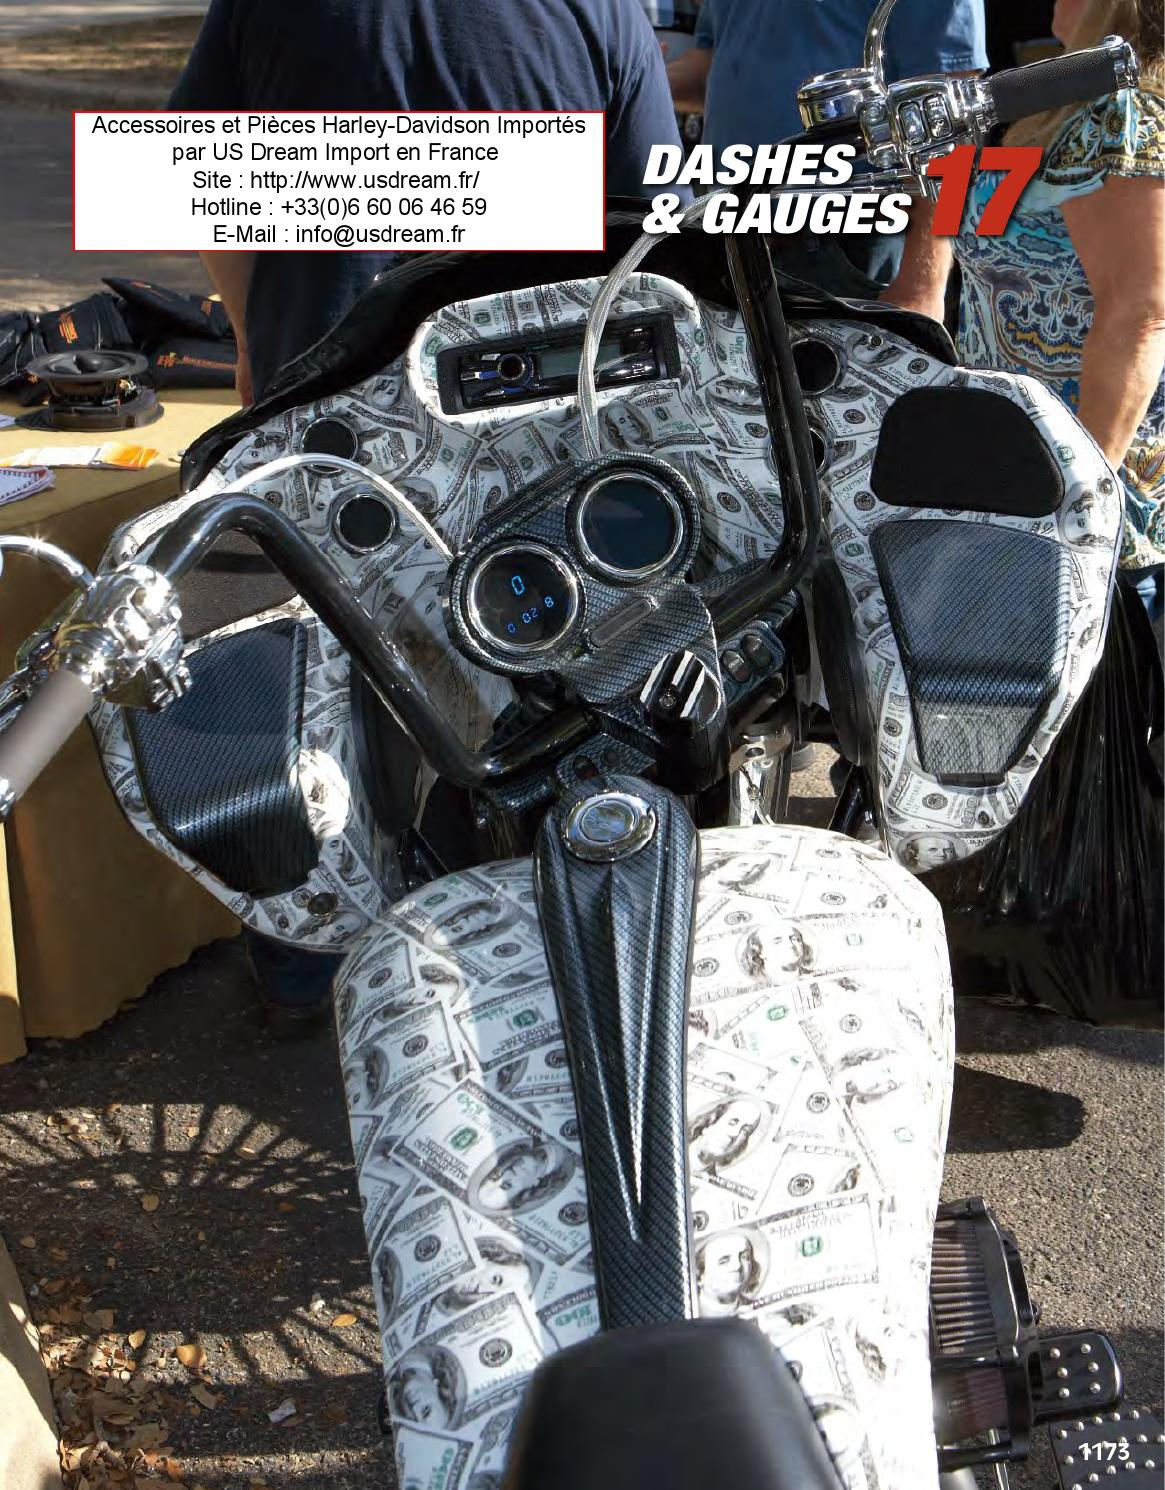 harley davidson et moto custom accessoires tableau de bord by pieces chrome et accessoires. Black Bedroom Furniture Sets. Home Design Ideas